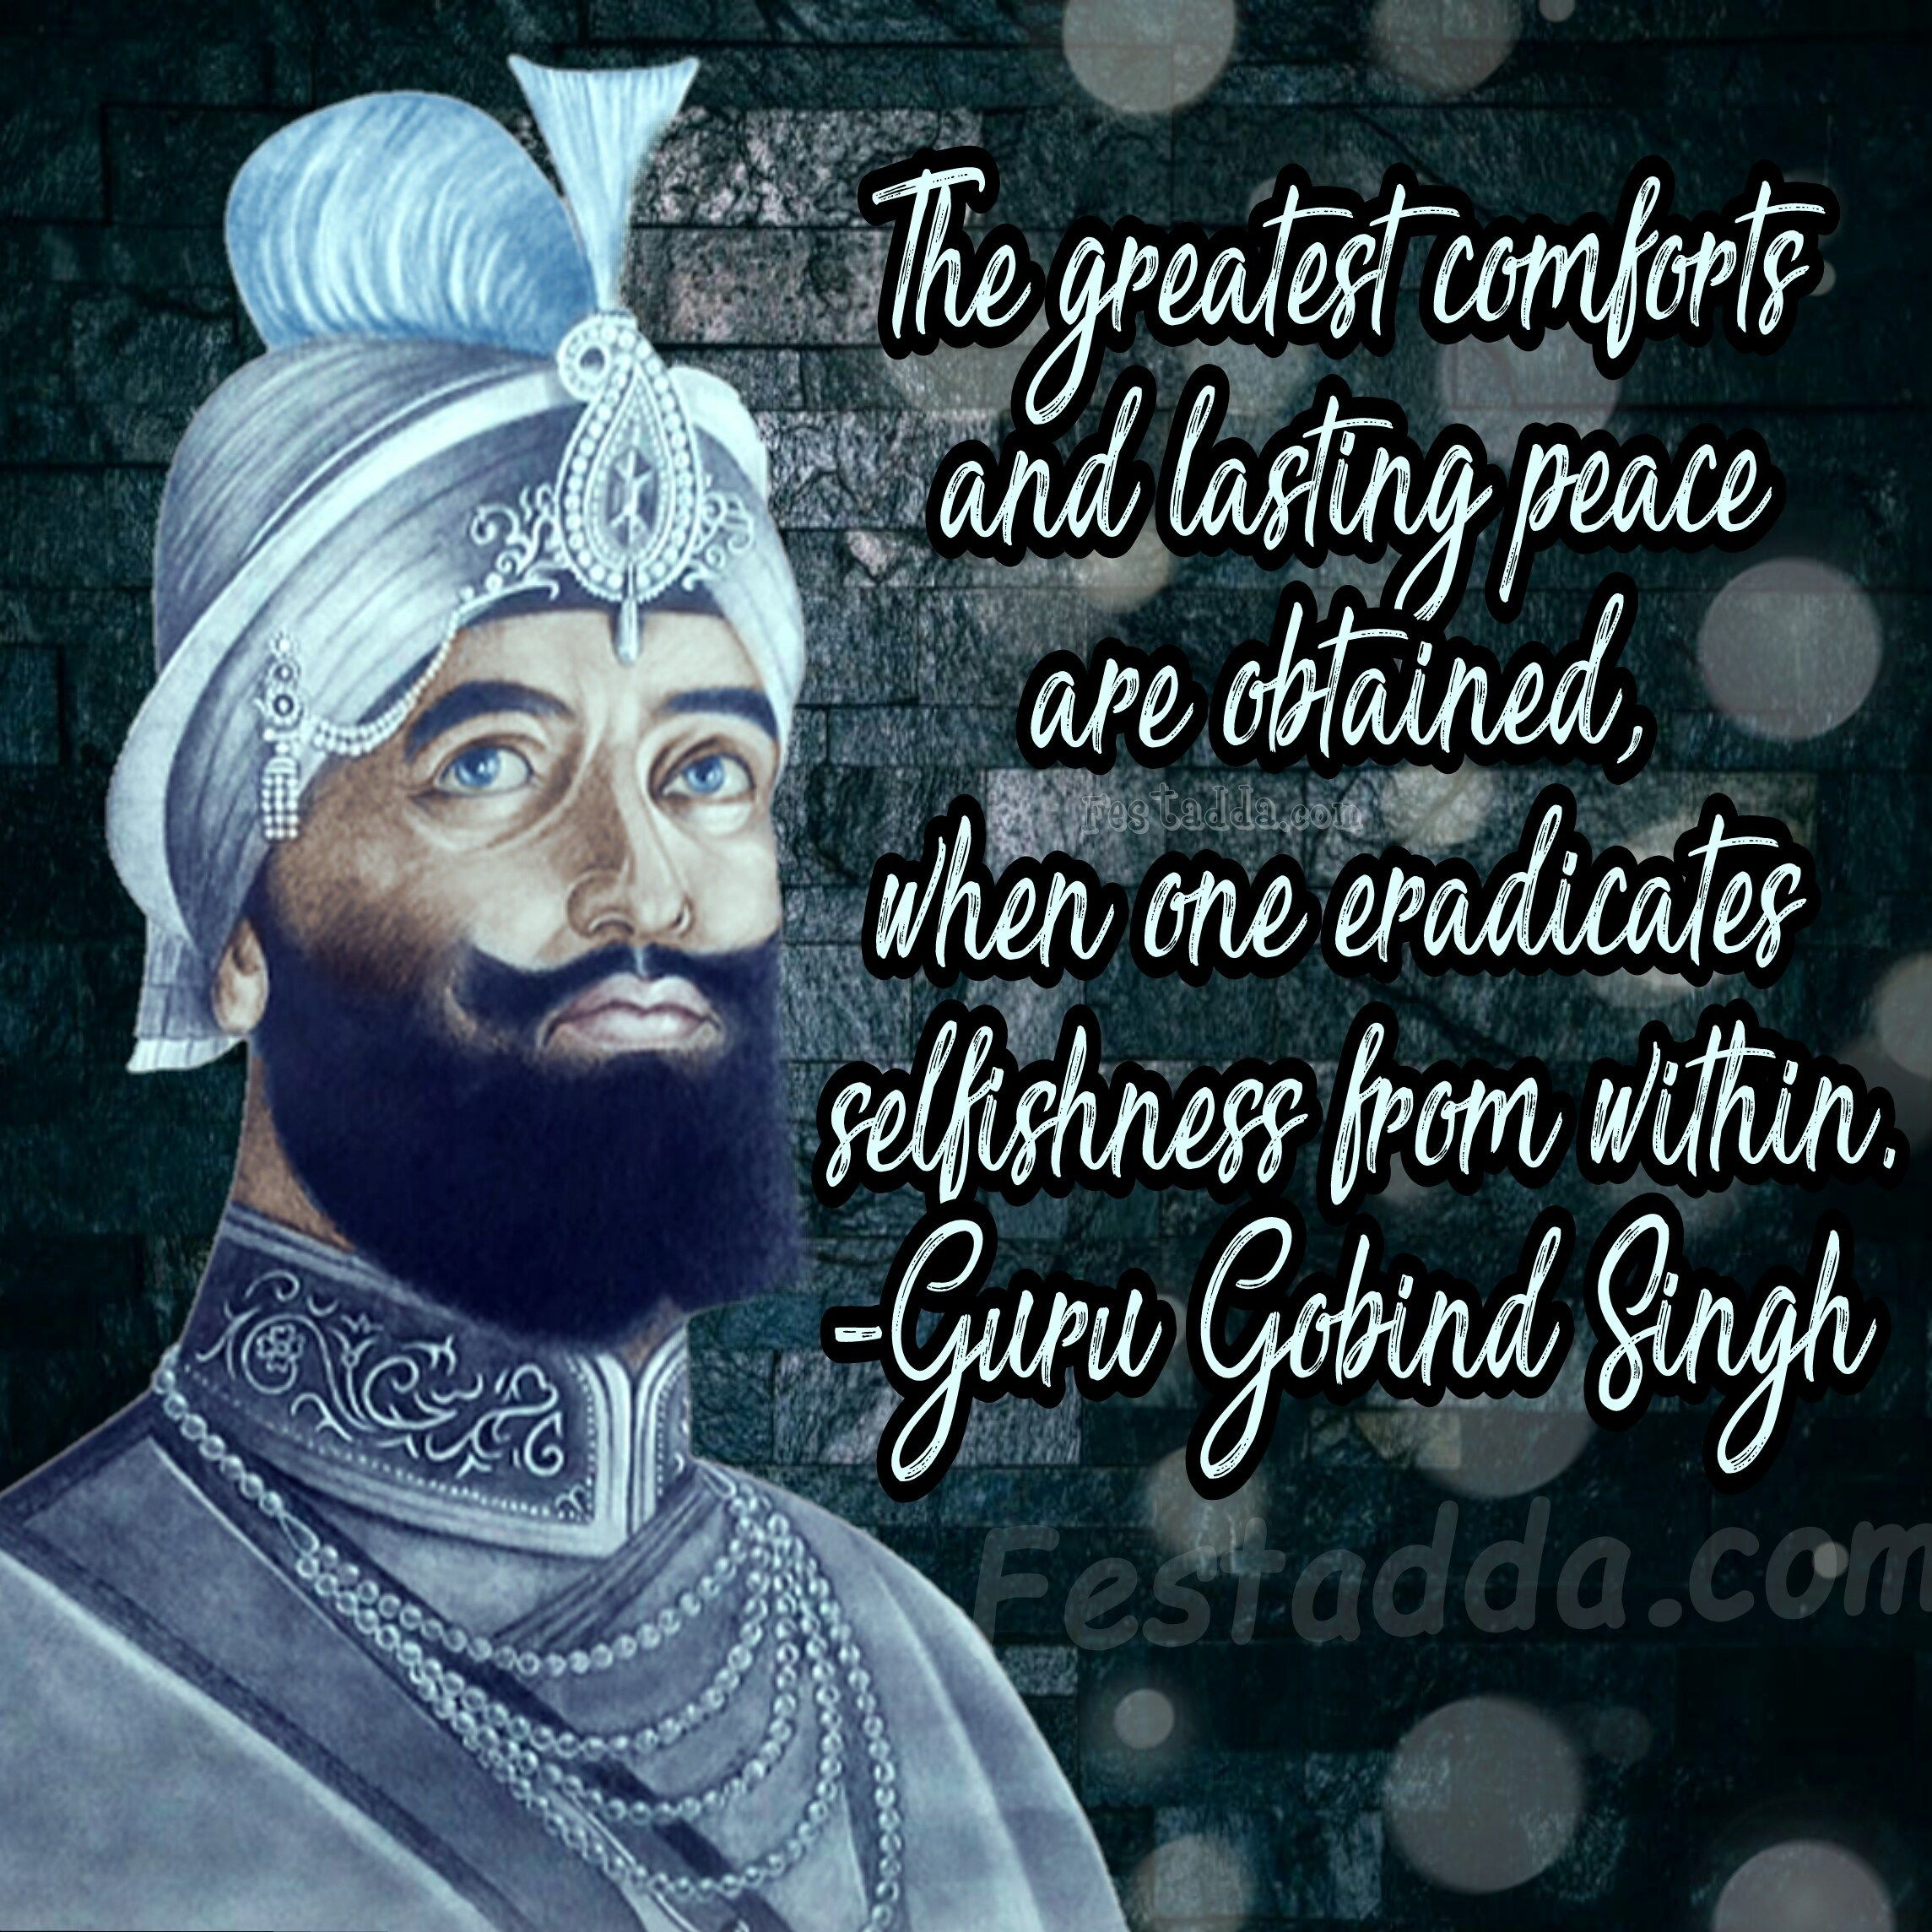 guru gobind singh inspirational messages quotes wishes guru